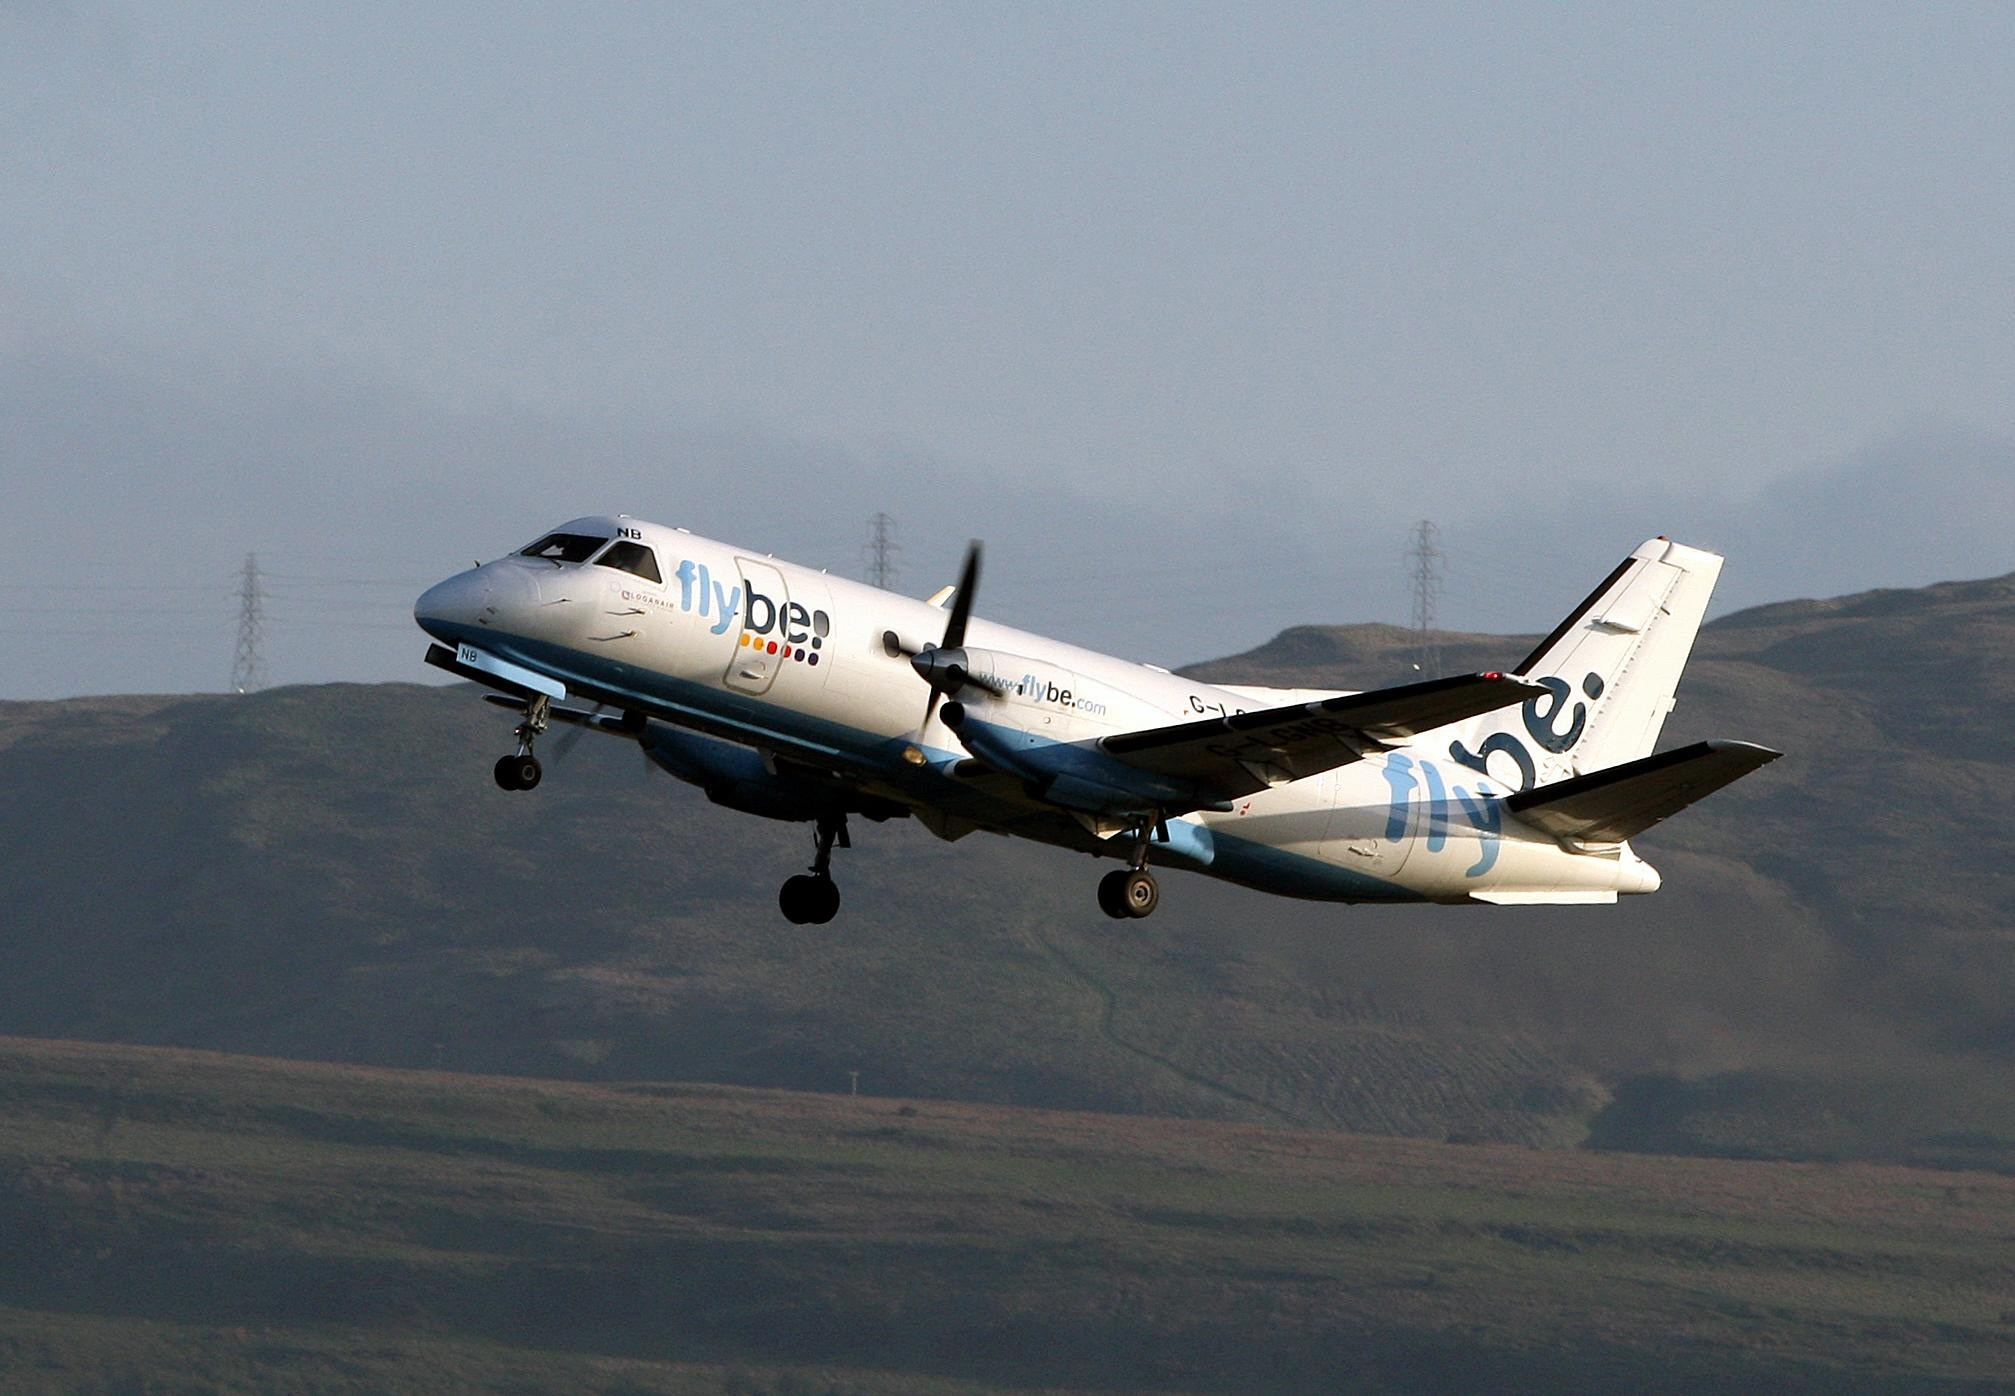 Flybe plans to axe 500 jobs